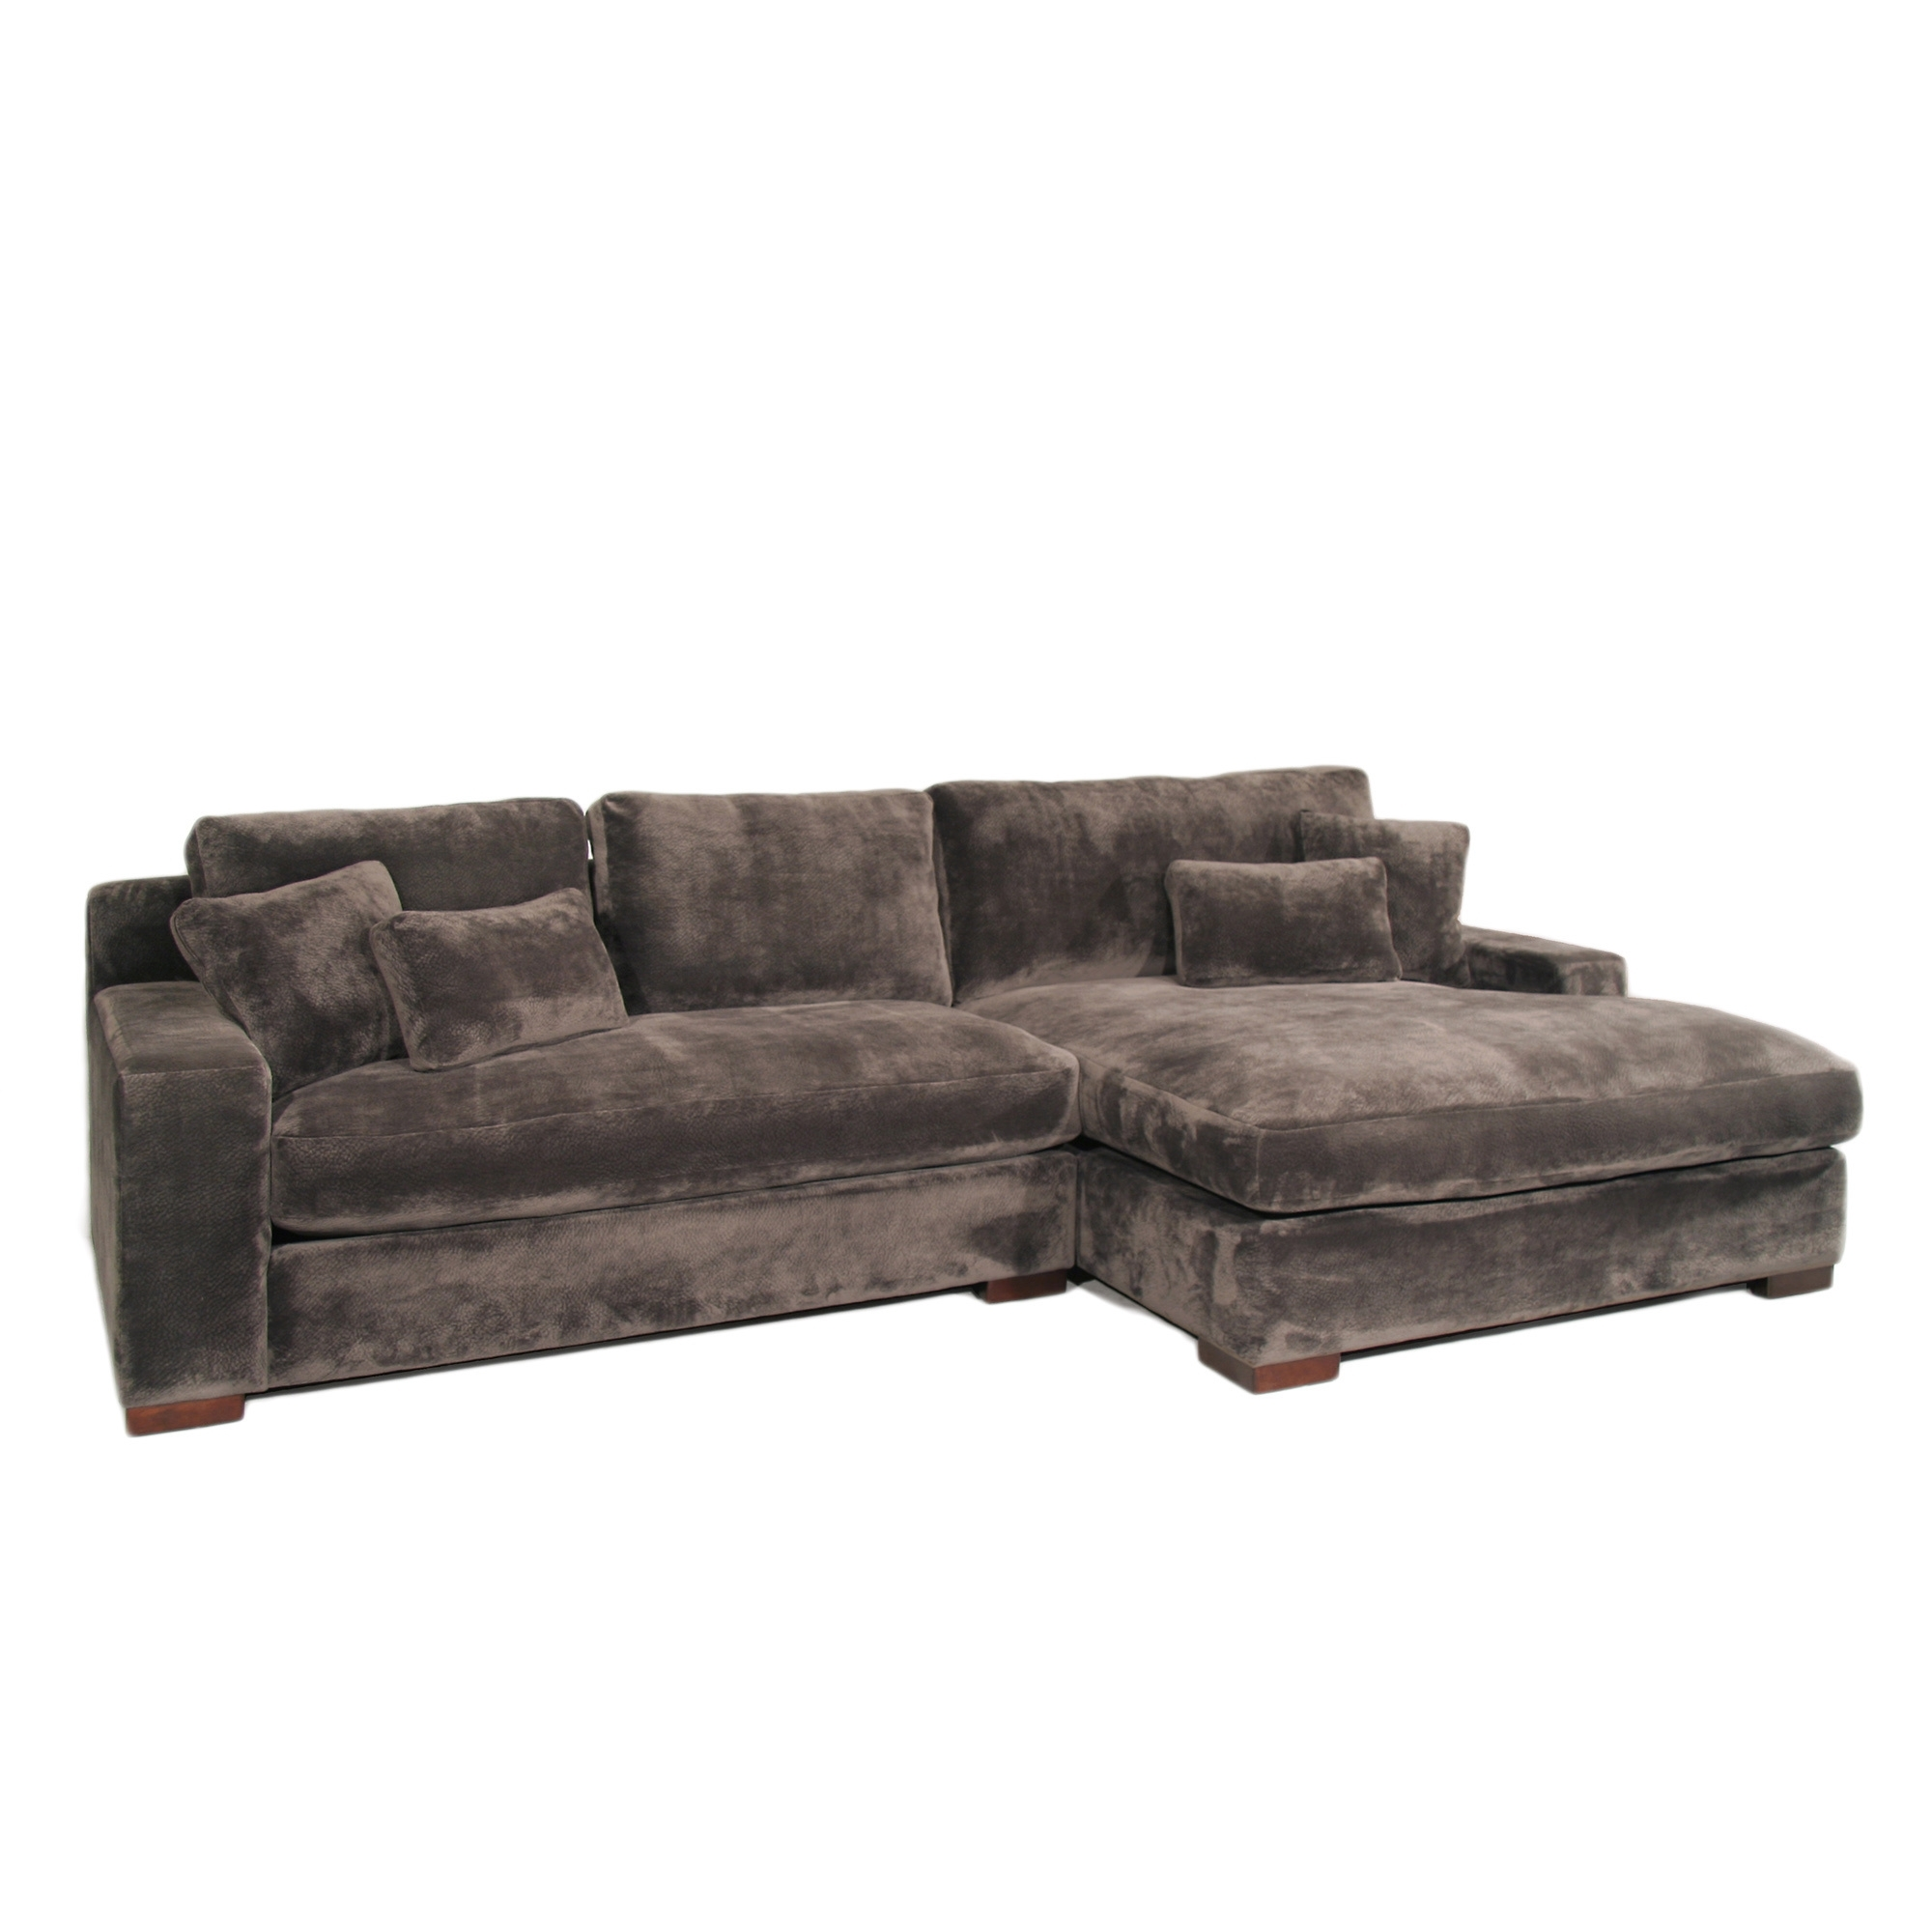 The Casual Contemporary Doris Two Piece Chaise Sectional Covered with regard to Delano Smoke 3 Piece Sectionals (Image 29 of 30)